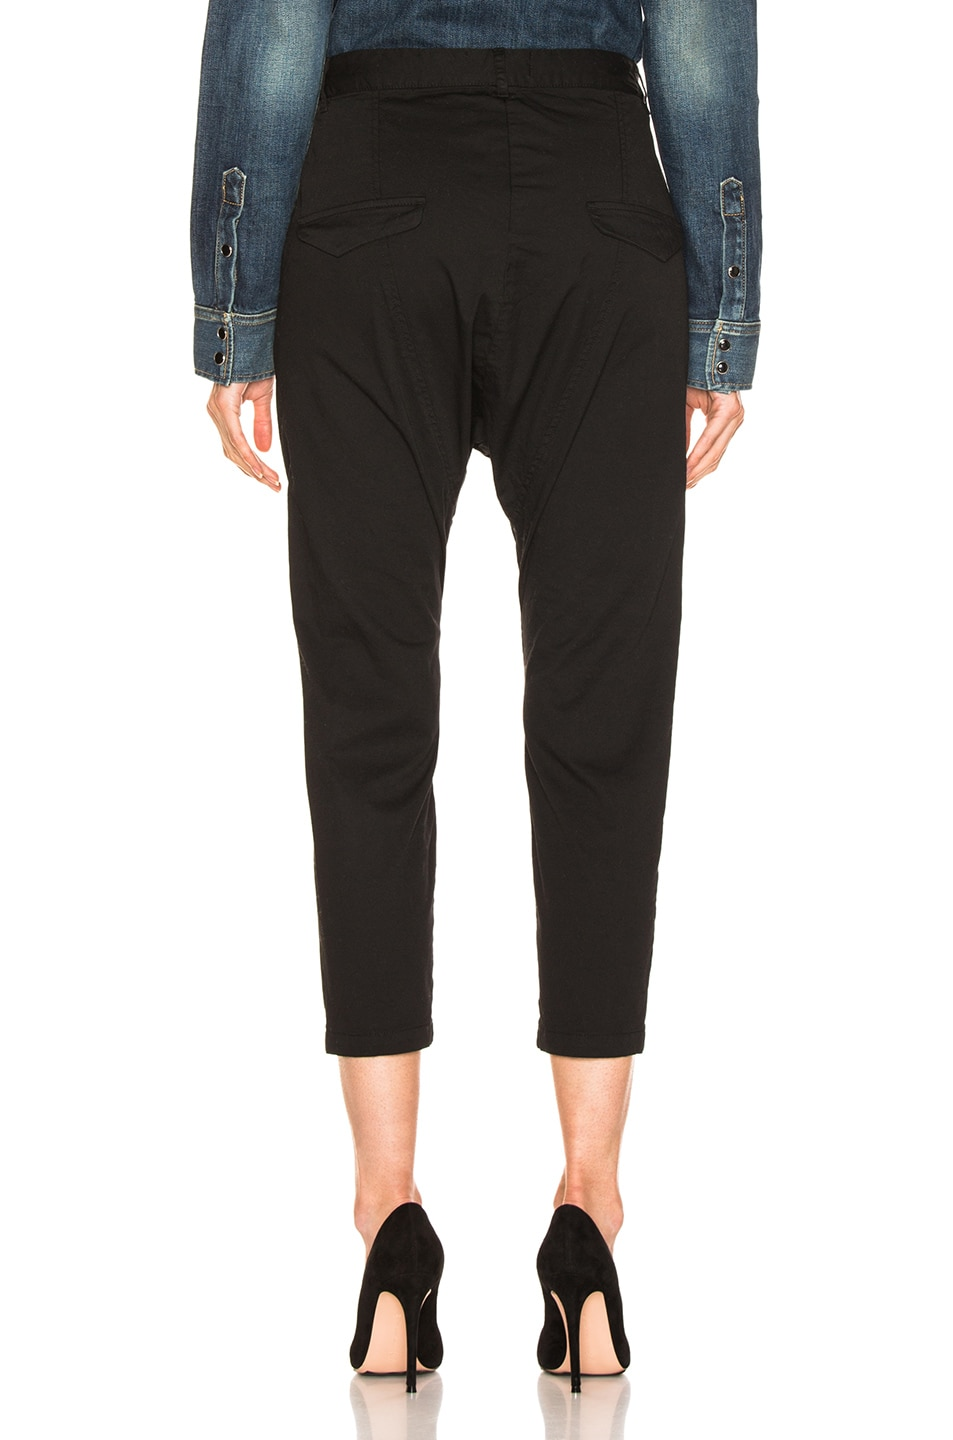 Image 3 of NILI LOTAN Lace Up Avery Pant in Jet Black